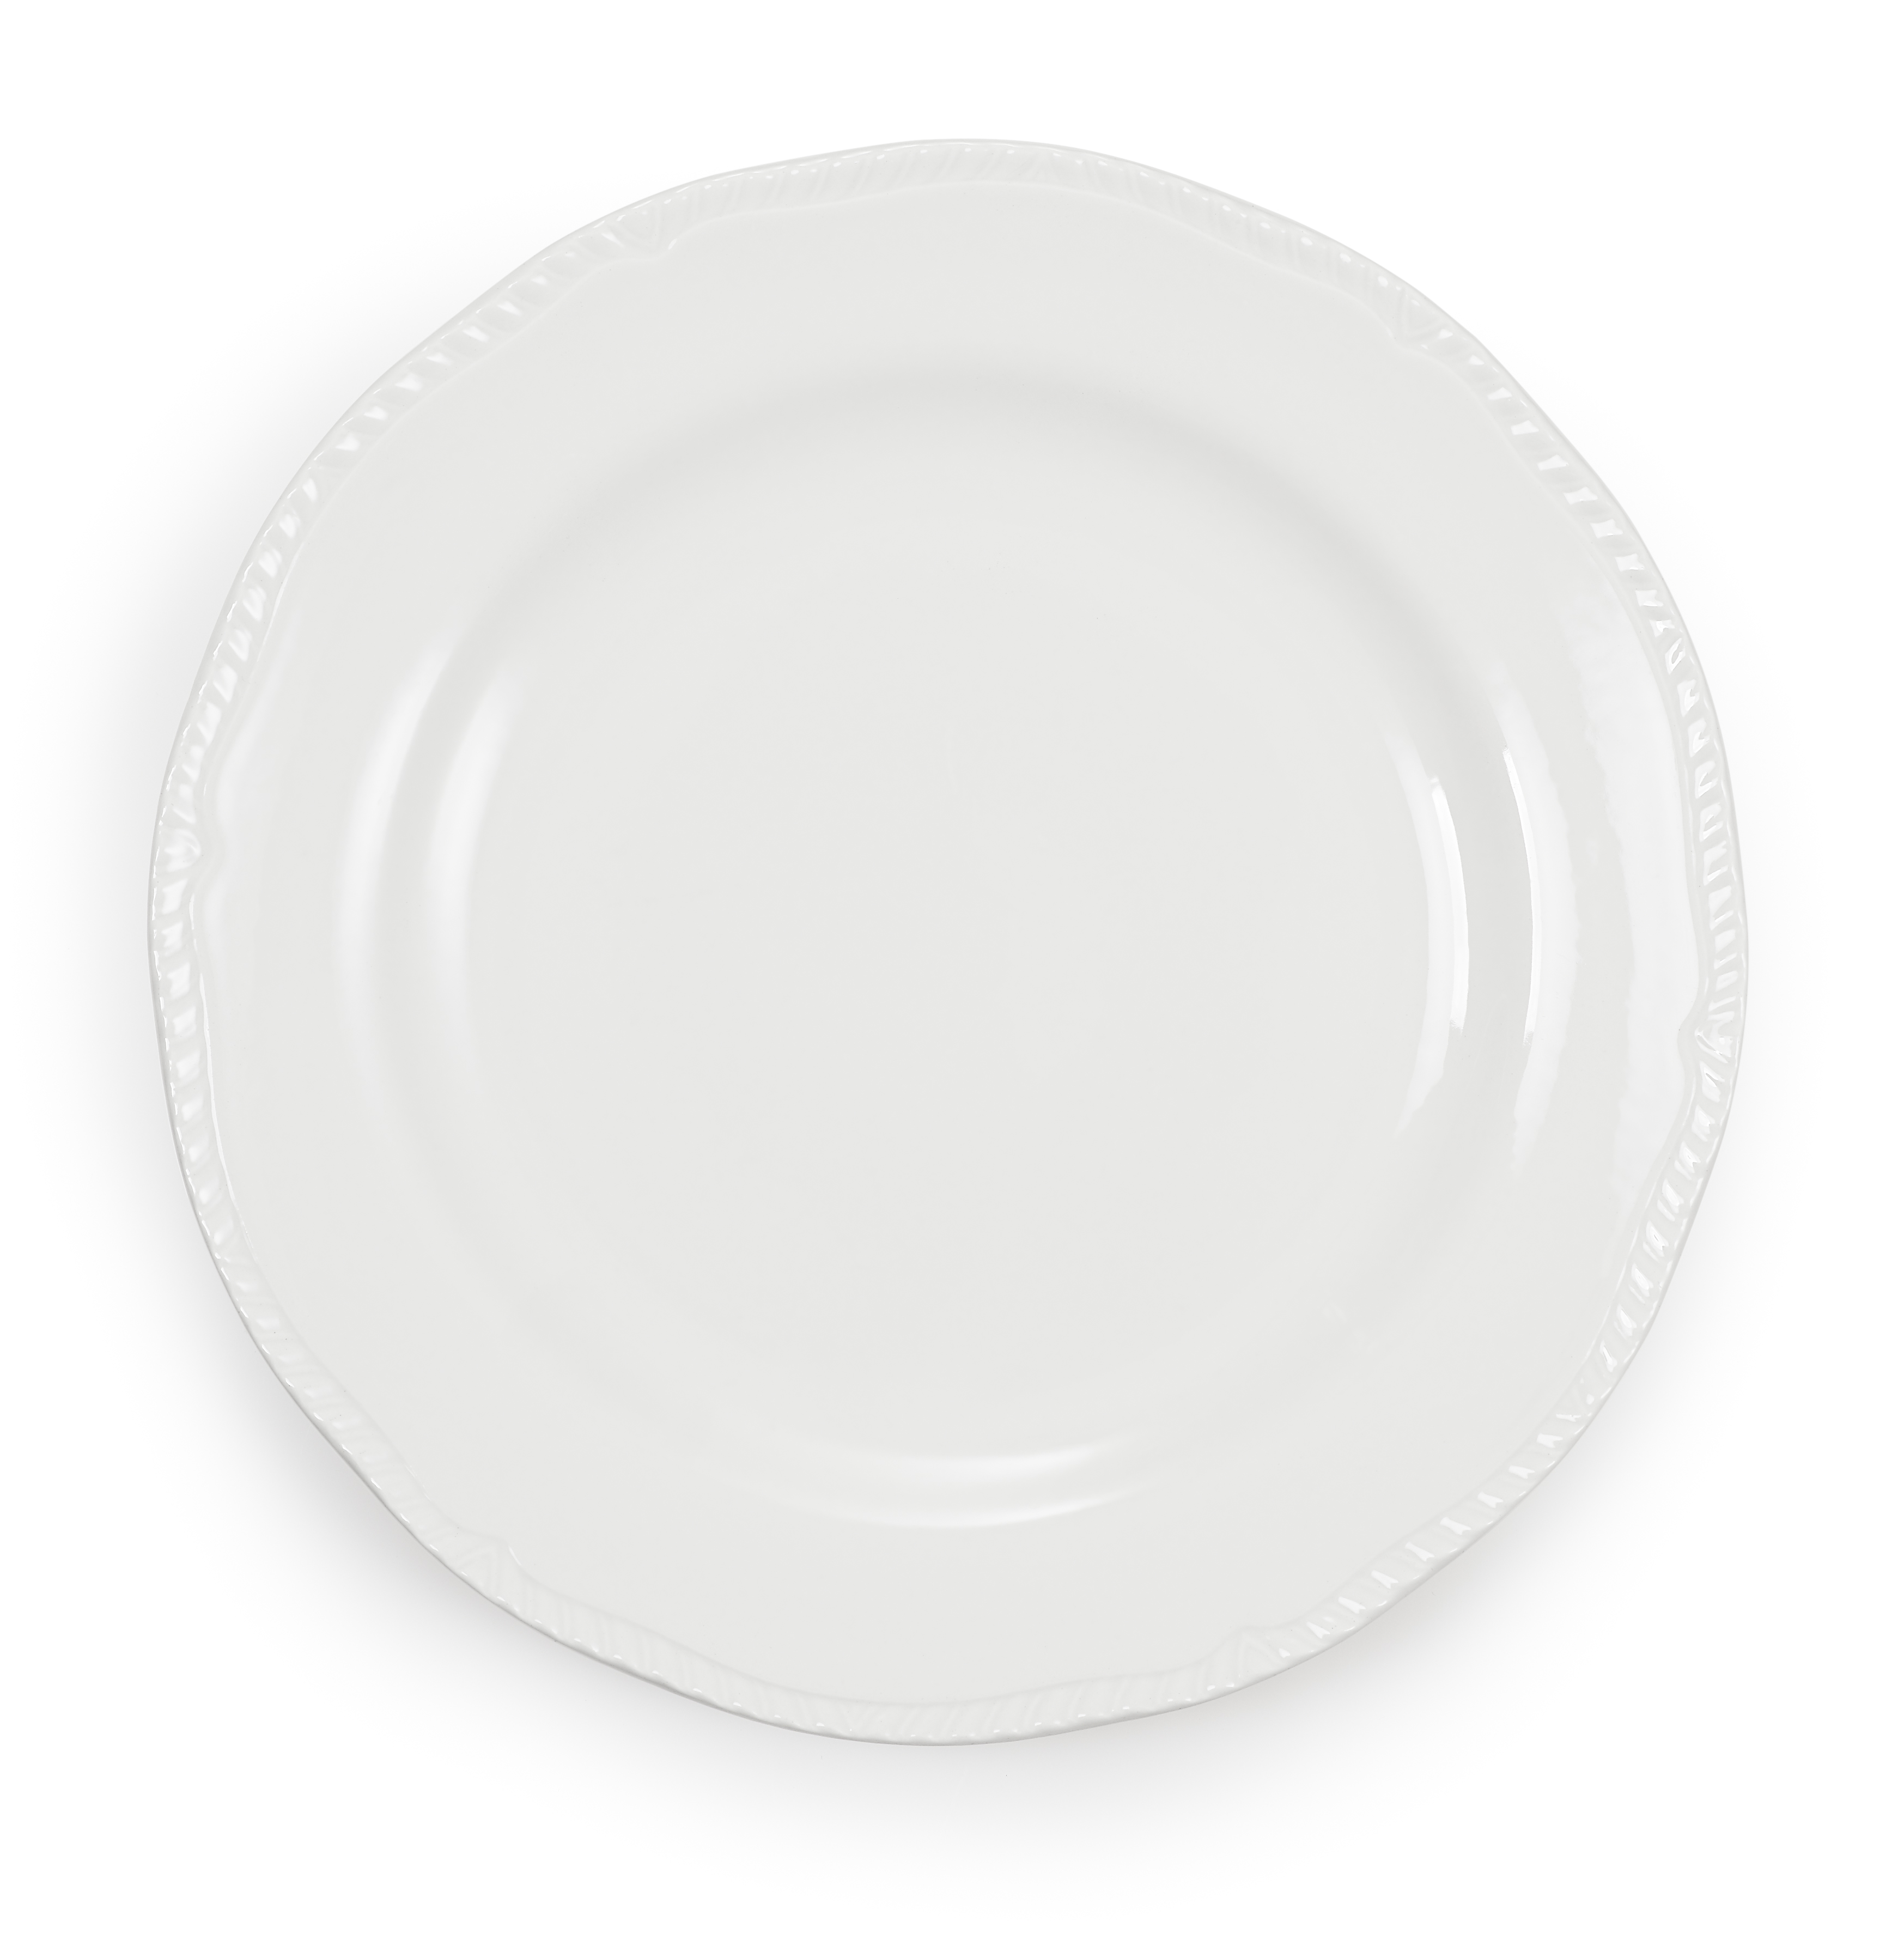 10 Quot White Dinner Plate Hire Crockery Hire Rochesters